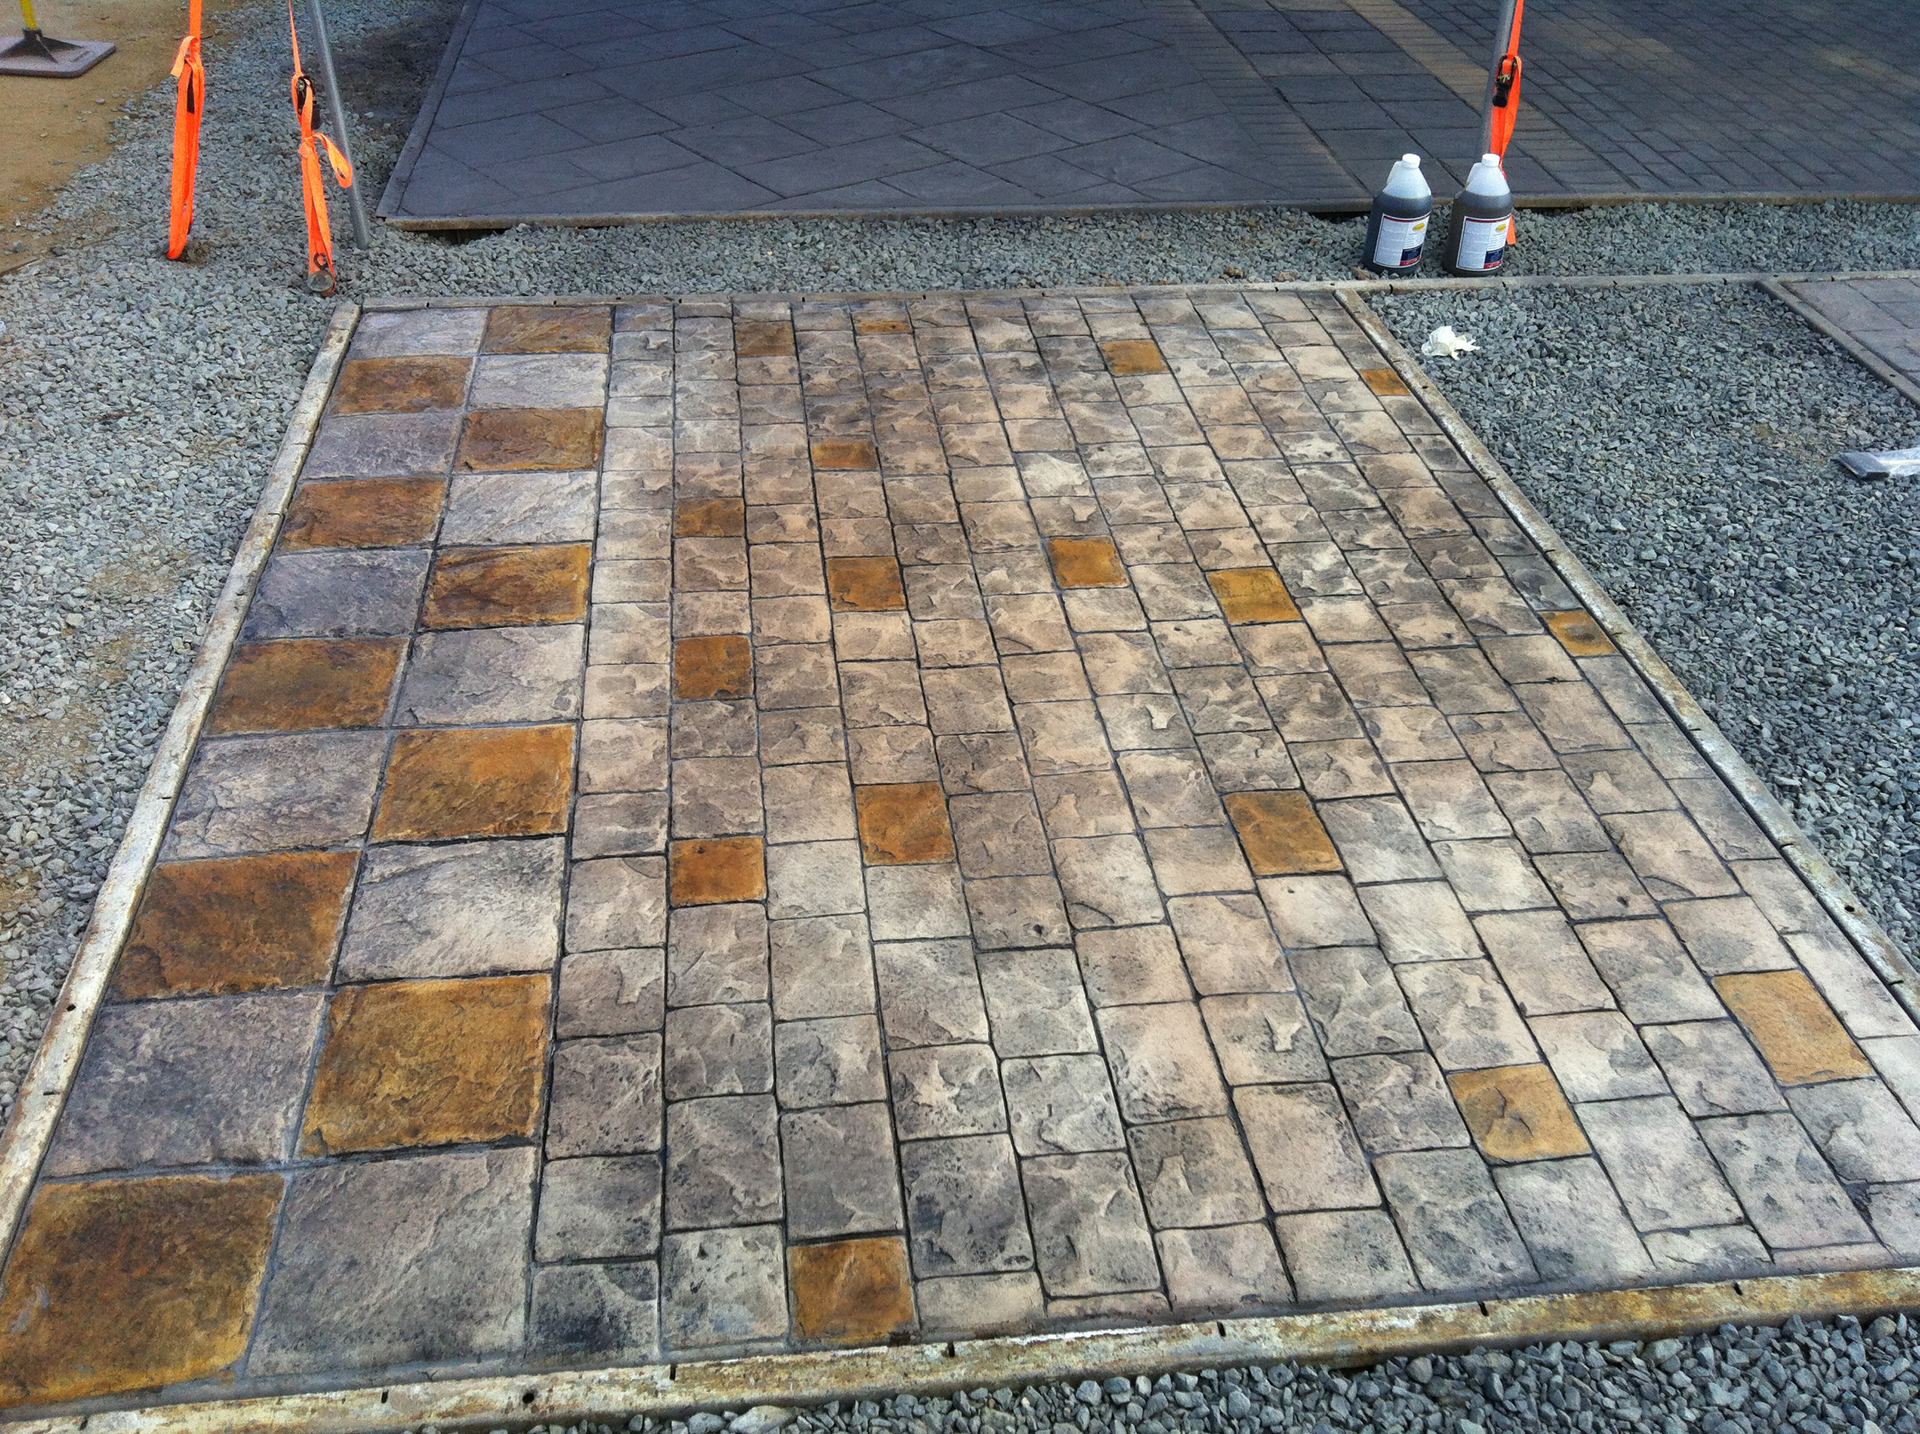 Brickform London Cobble, CH Light Gray, RA Dark Gray, Artesian Stain, Gem Seal